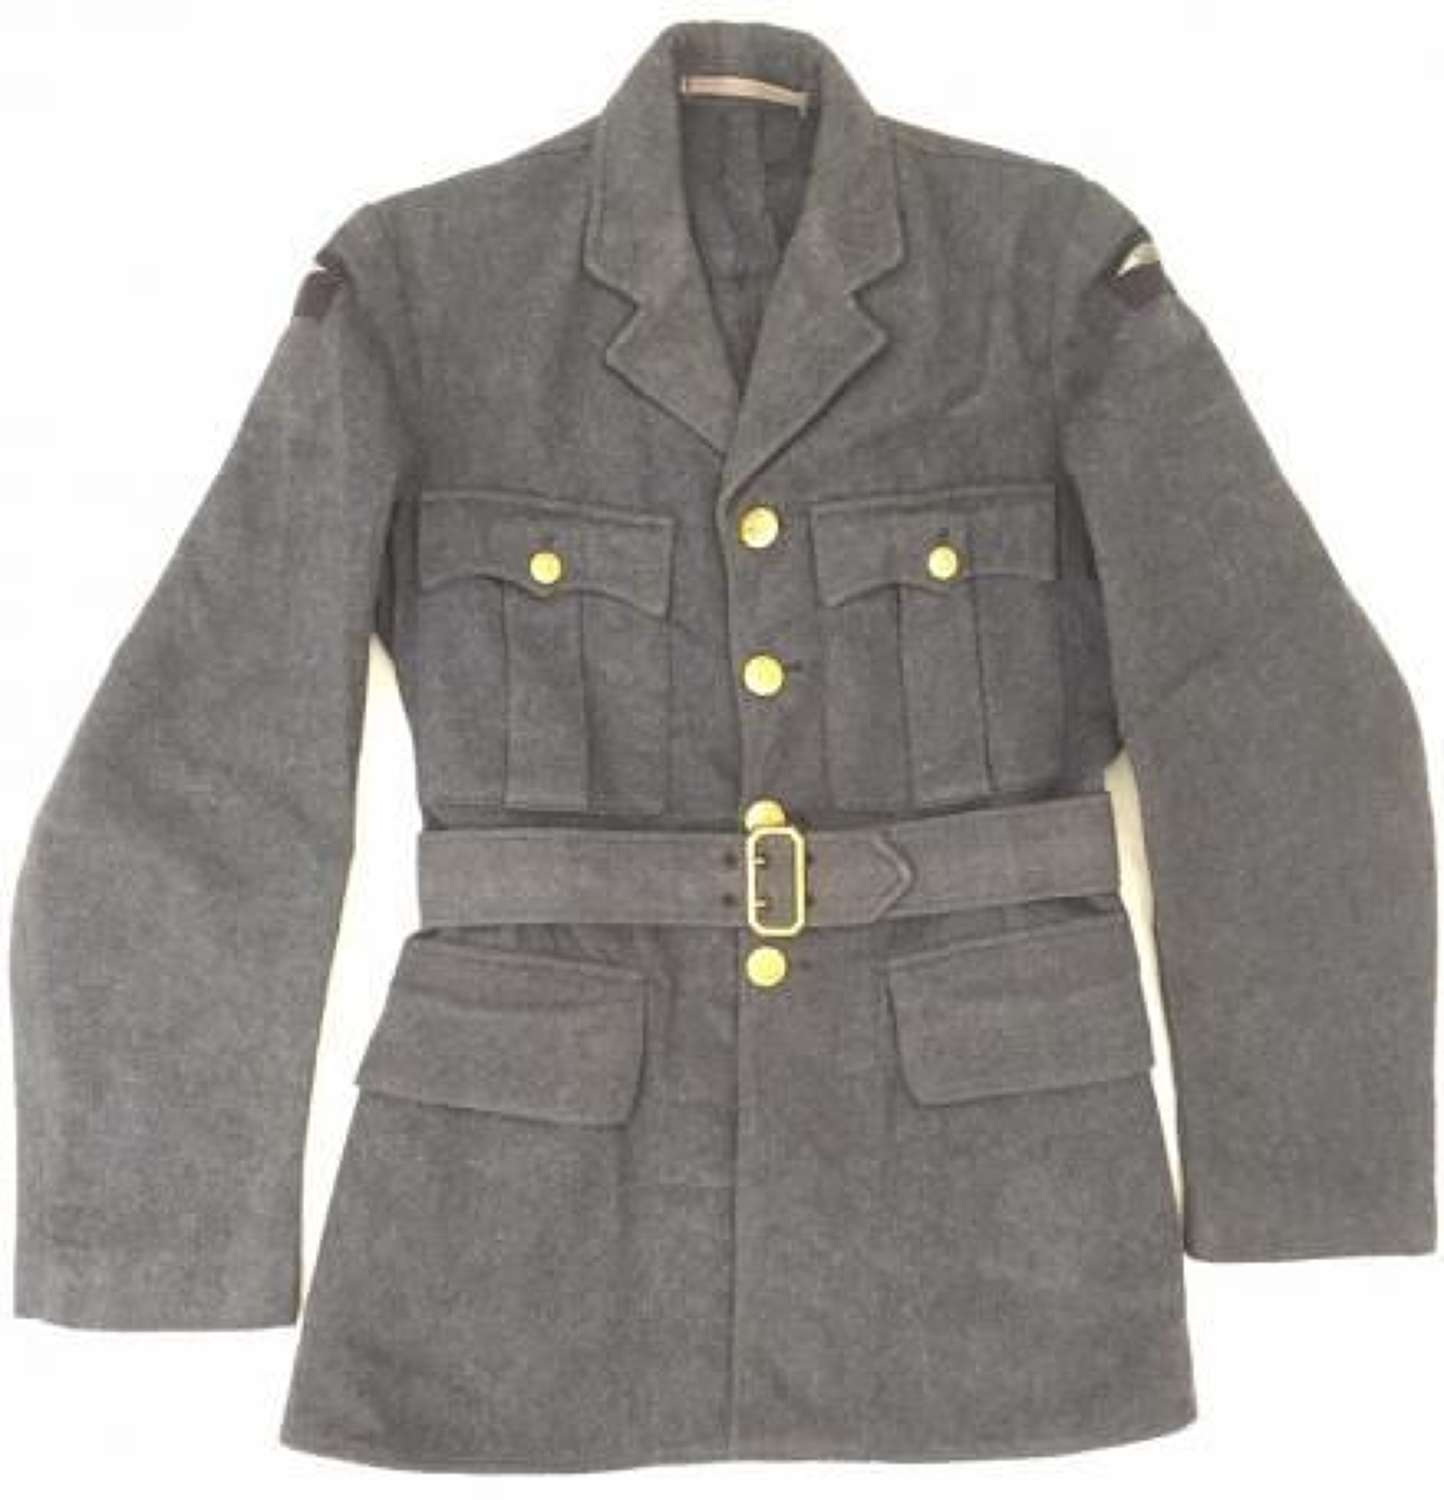 1949 Dated RAF OA Tunic With Belt - Size 10